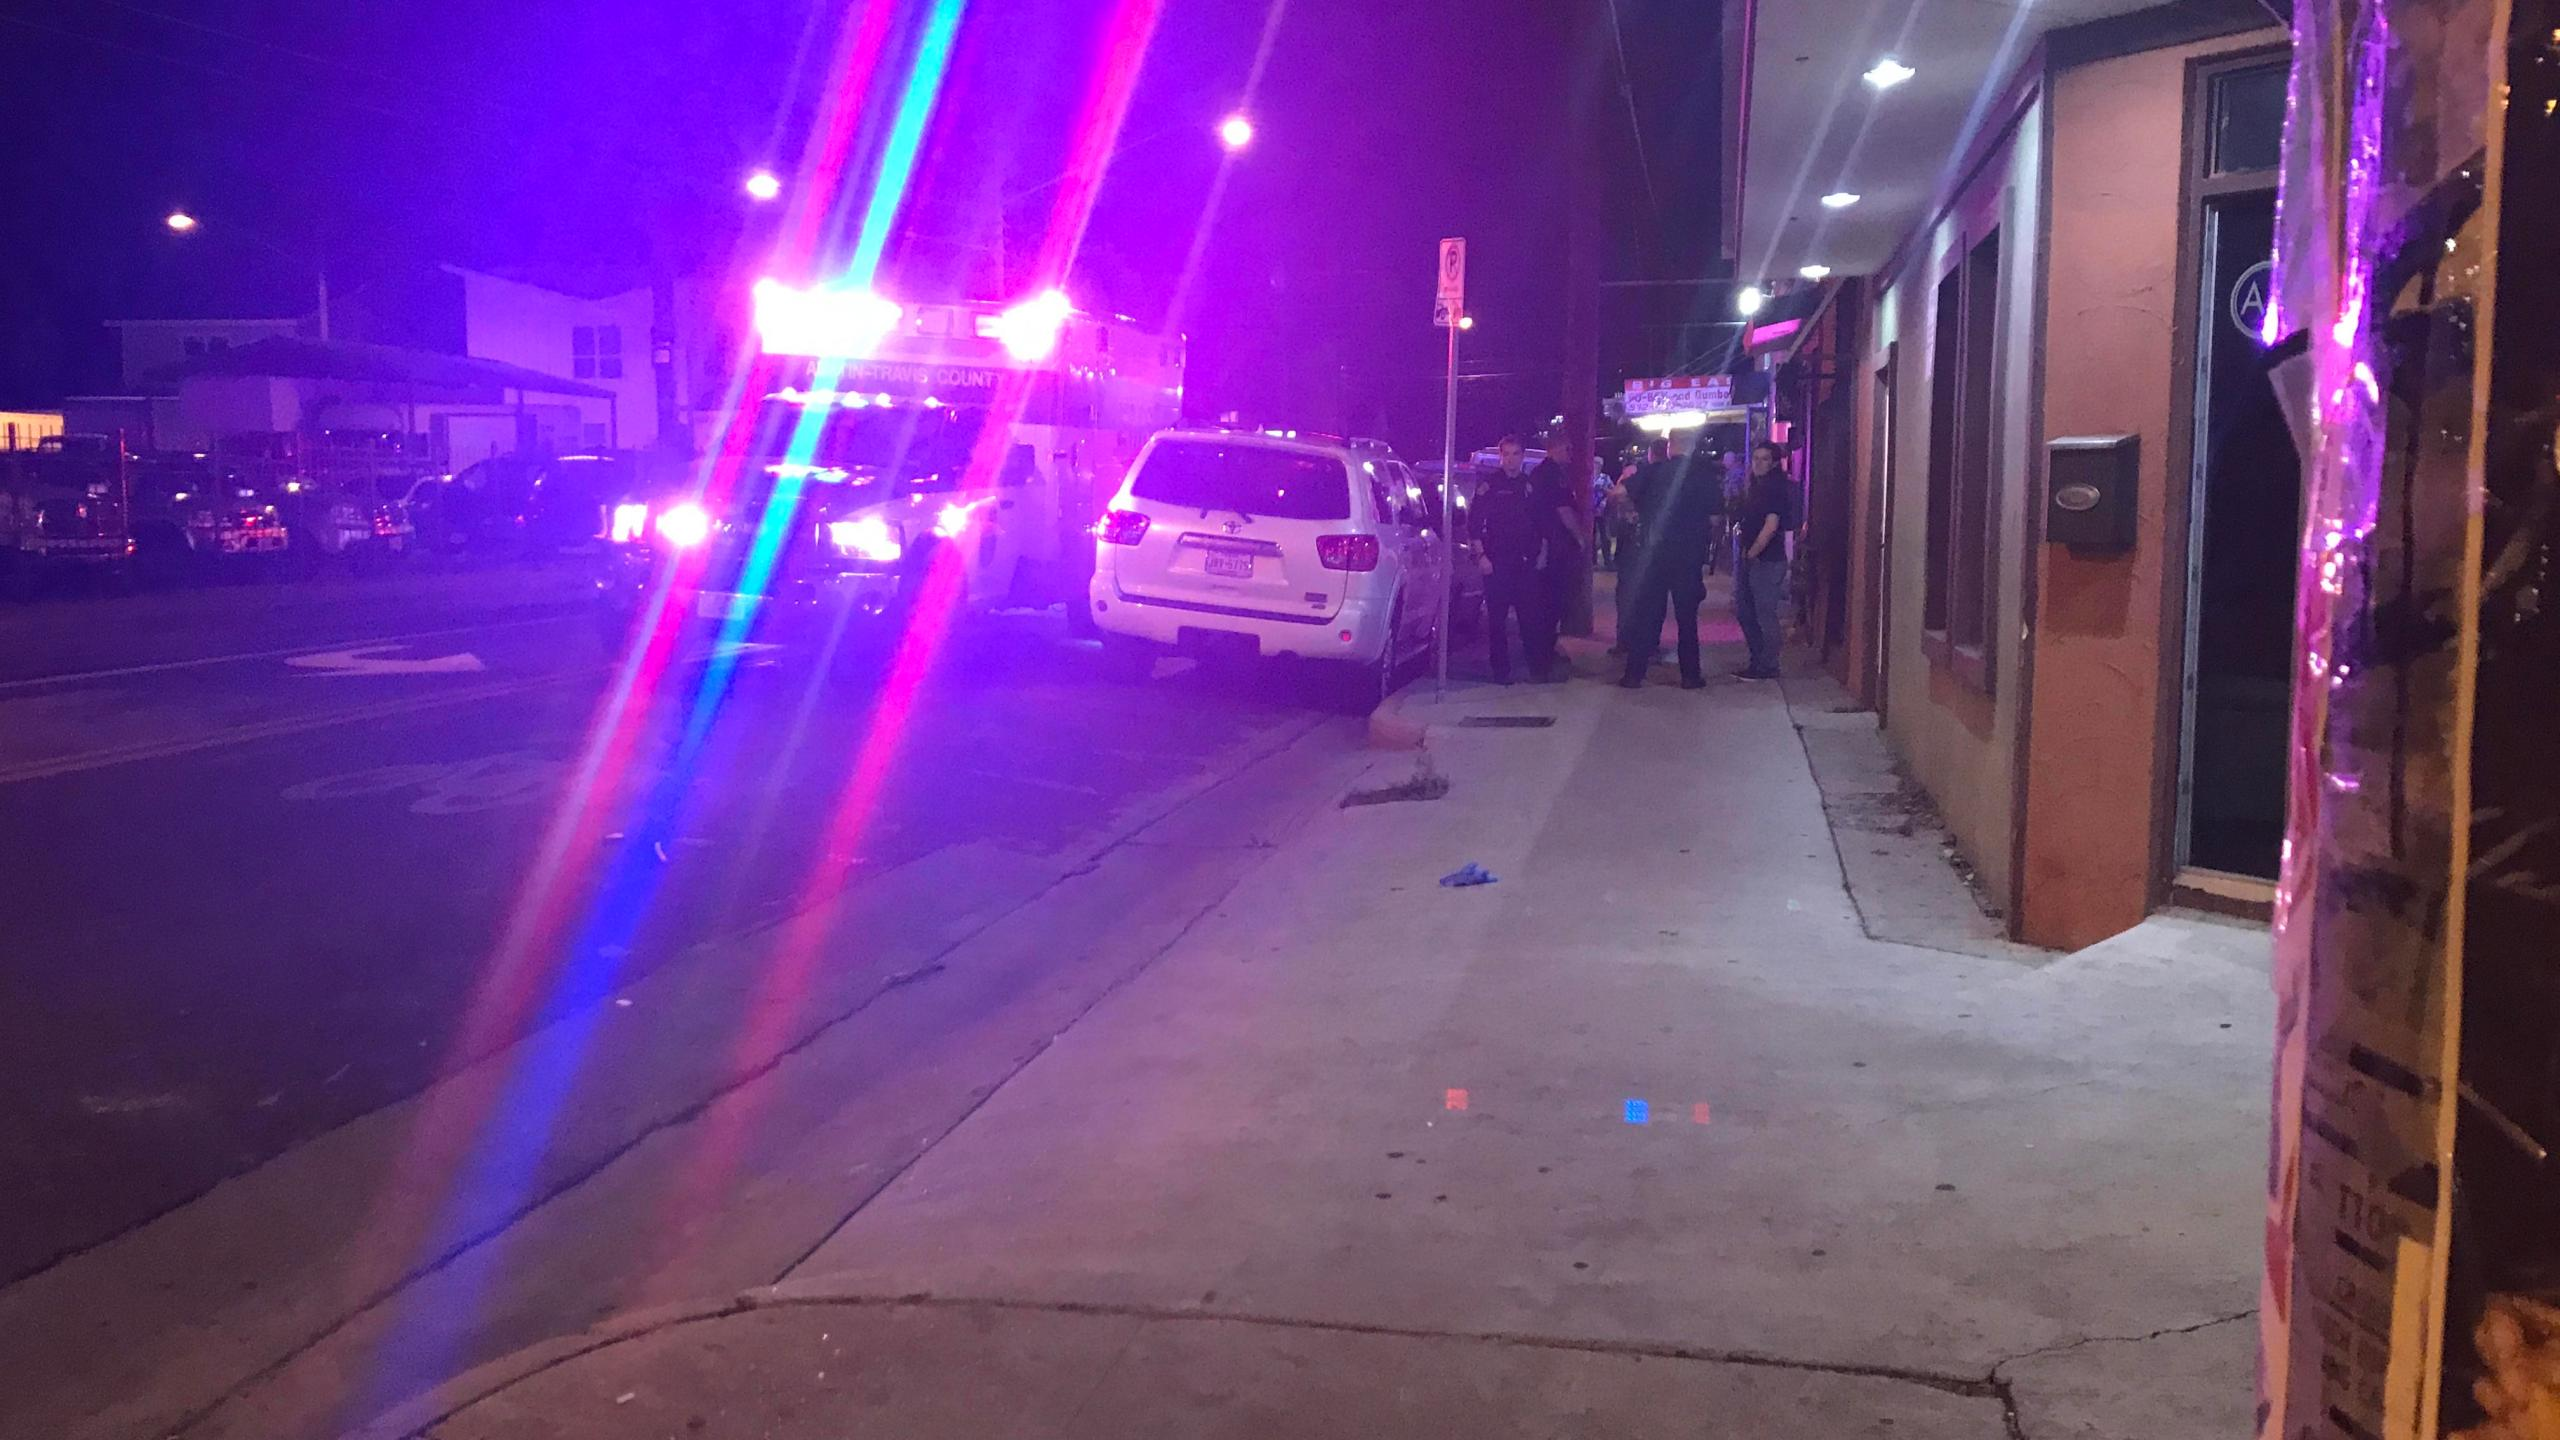 Stabbing seriously injured man in east Austin at 12th and Chicon